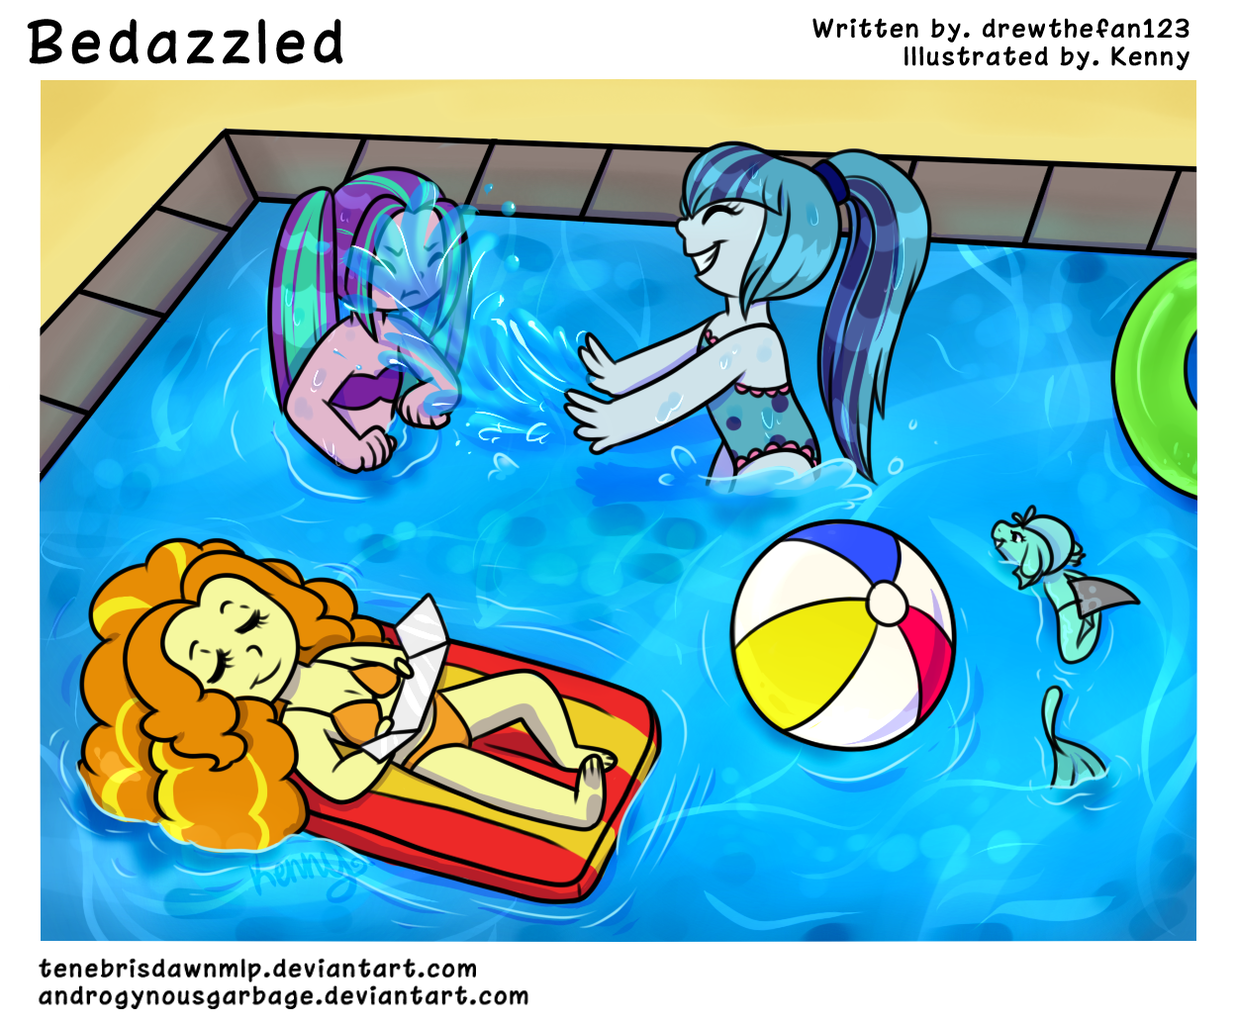 what does bedazzled mean